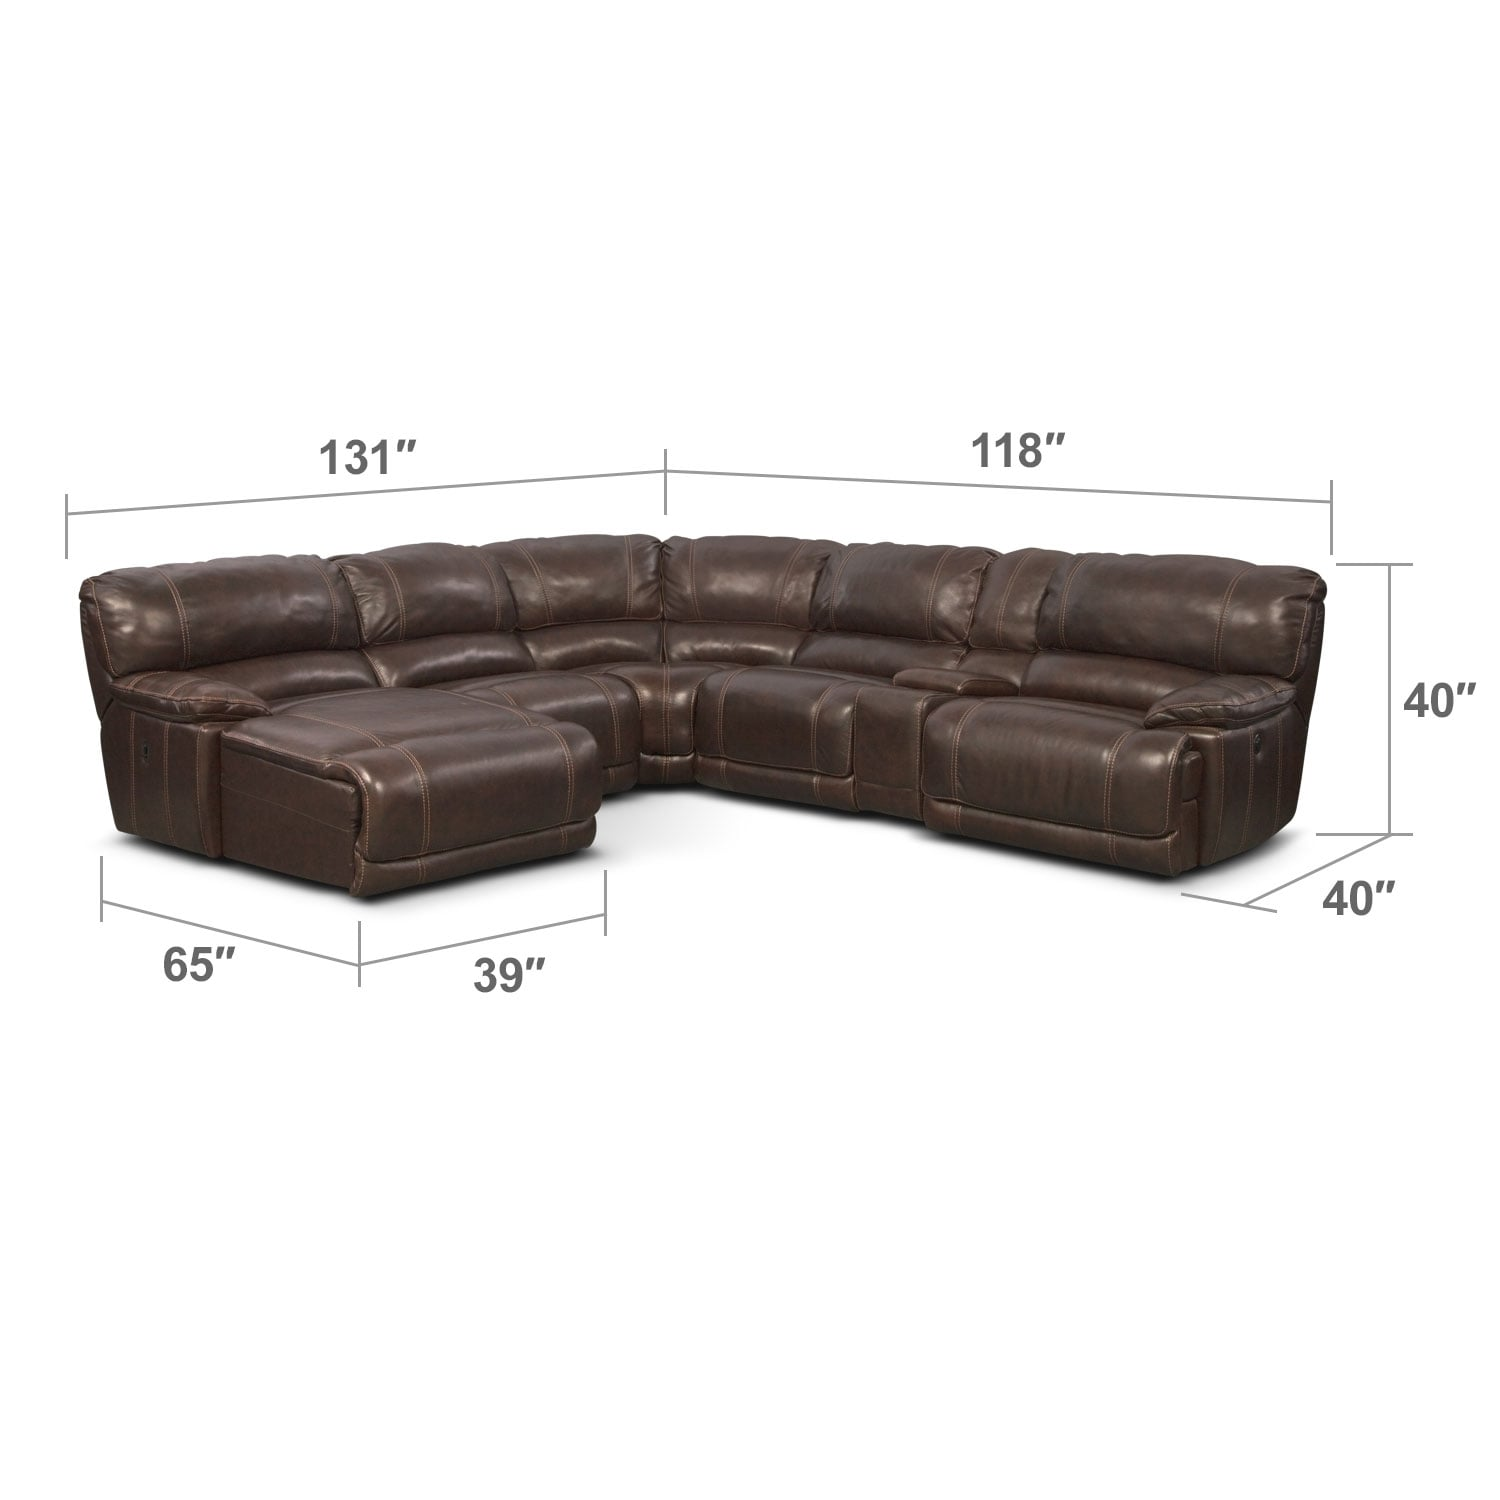 Midori 6 Pc Leather Power Reclining Sectional Sofa: St. Malo 6-Piece Power Reclining Sectional With Left